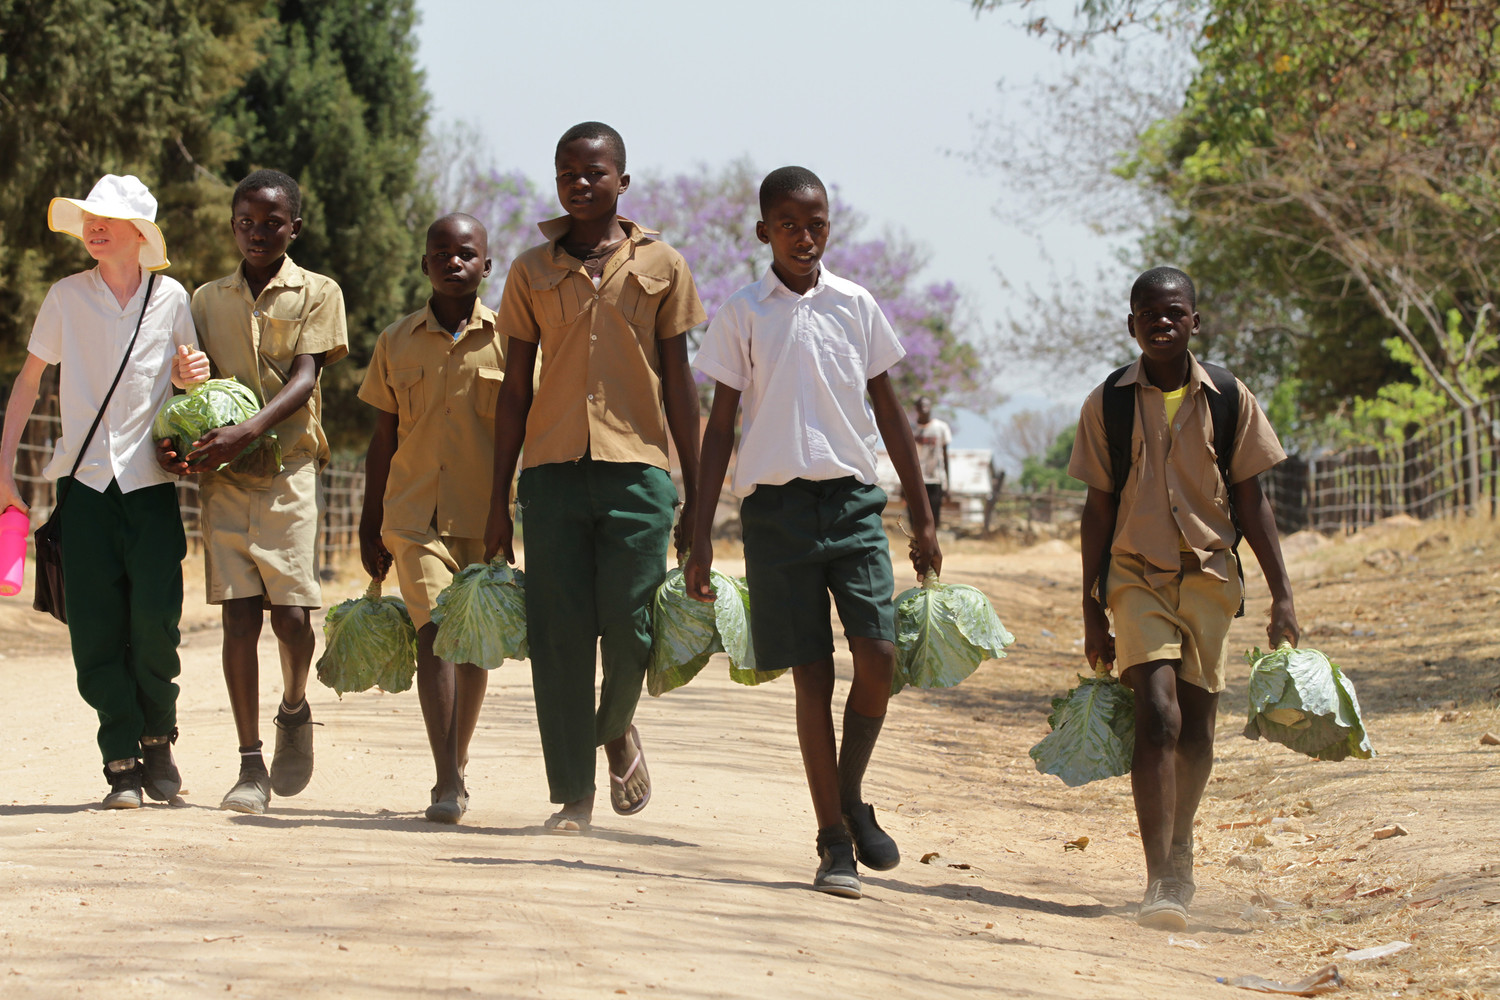 Boys carry cabbages to be prepared for lunch by their parents in 2017 in Harare, Zimbabwe. World Food Day is celebrated Oct. 16 to mark the date in 1945 the U.N. Food and Agriculture Organization was founded.